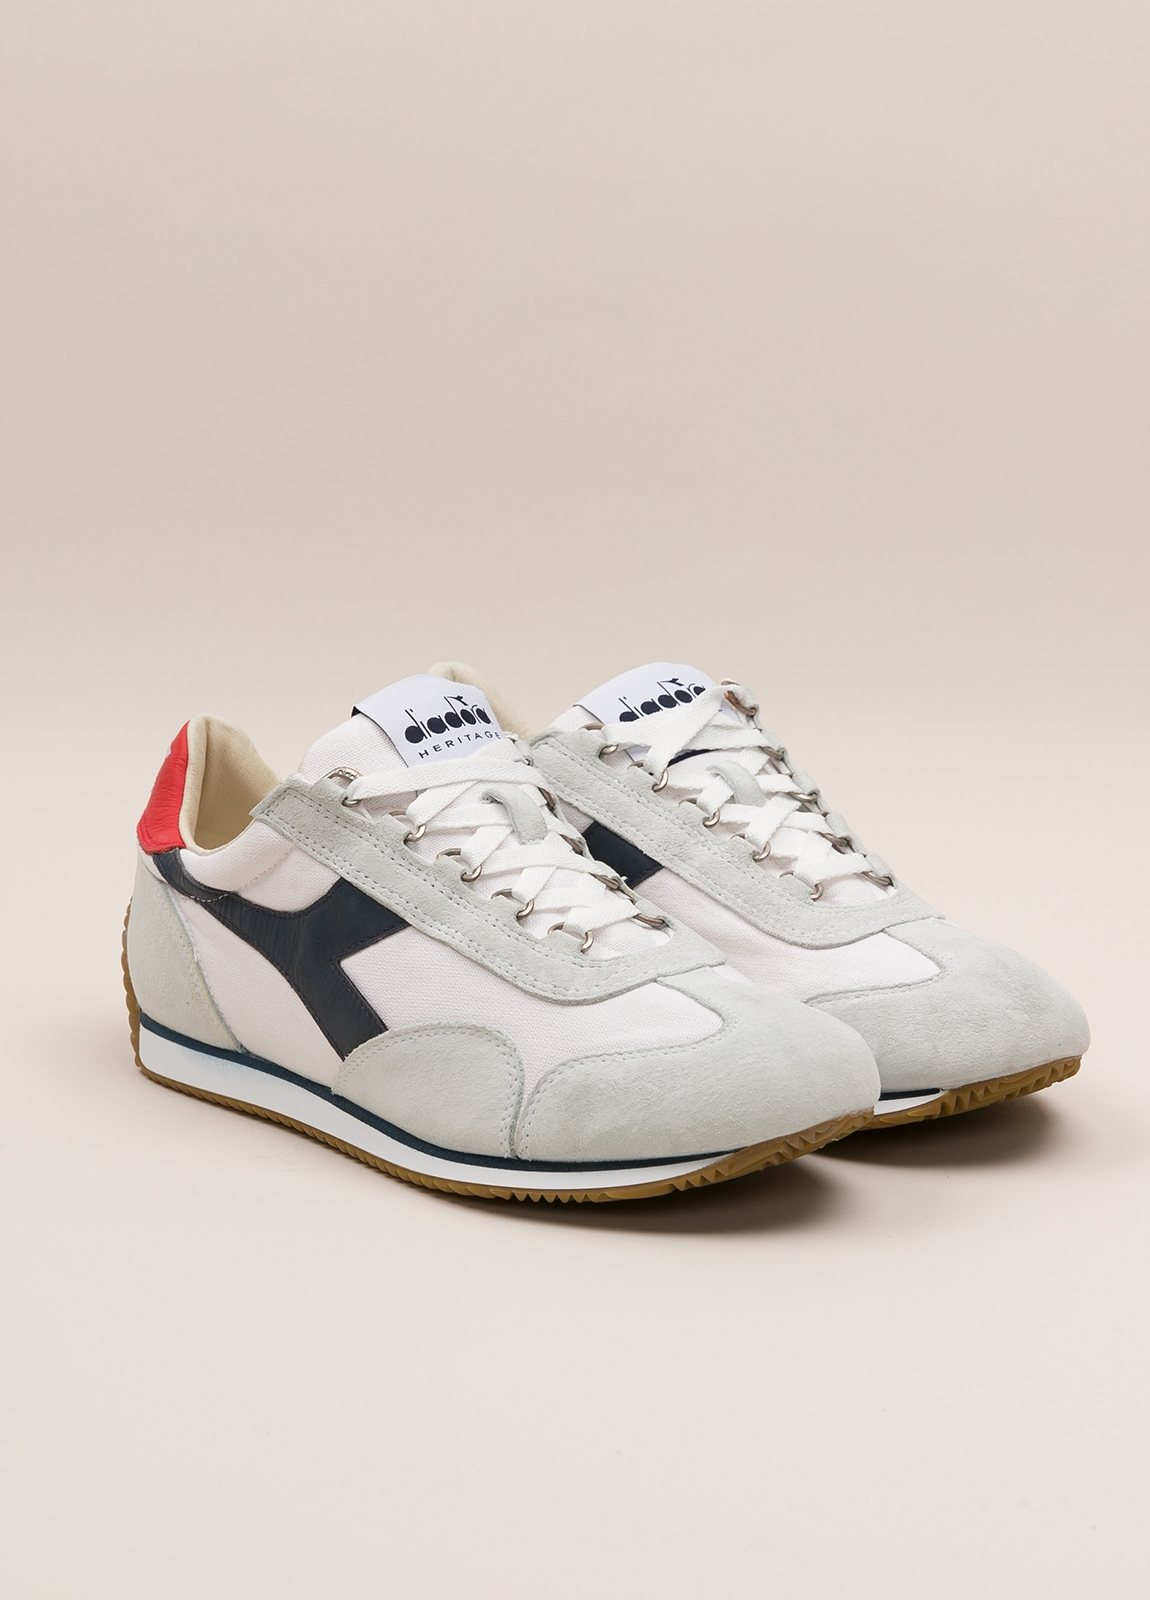 Sneakers DIADORA color blanco - Ítem3